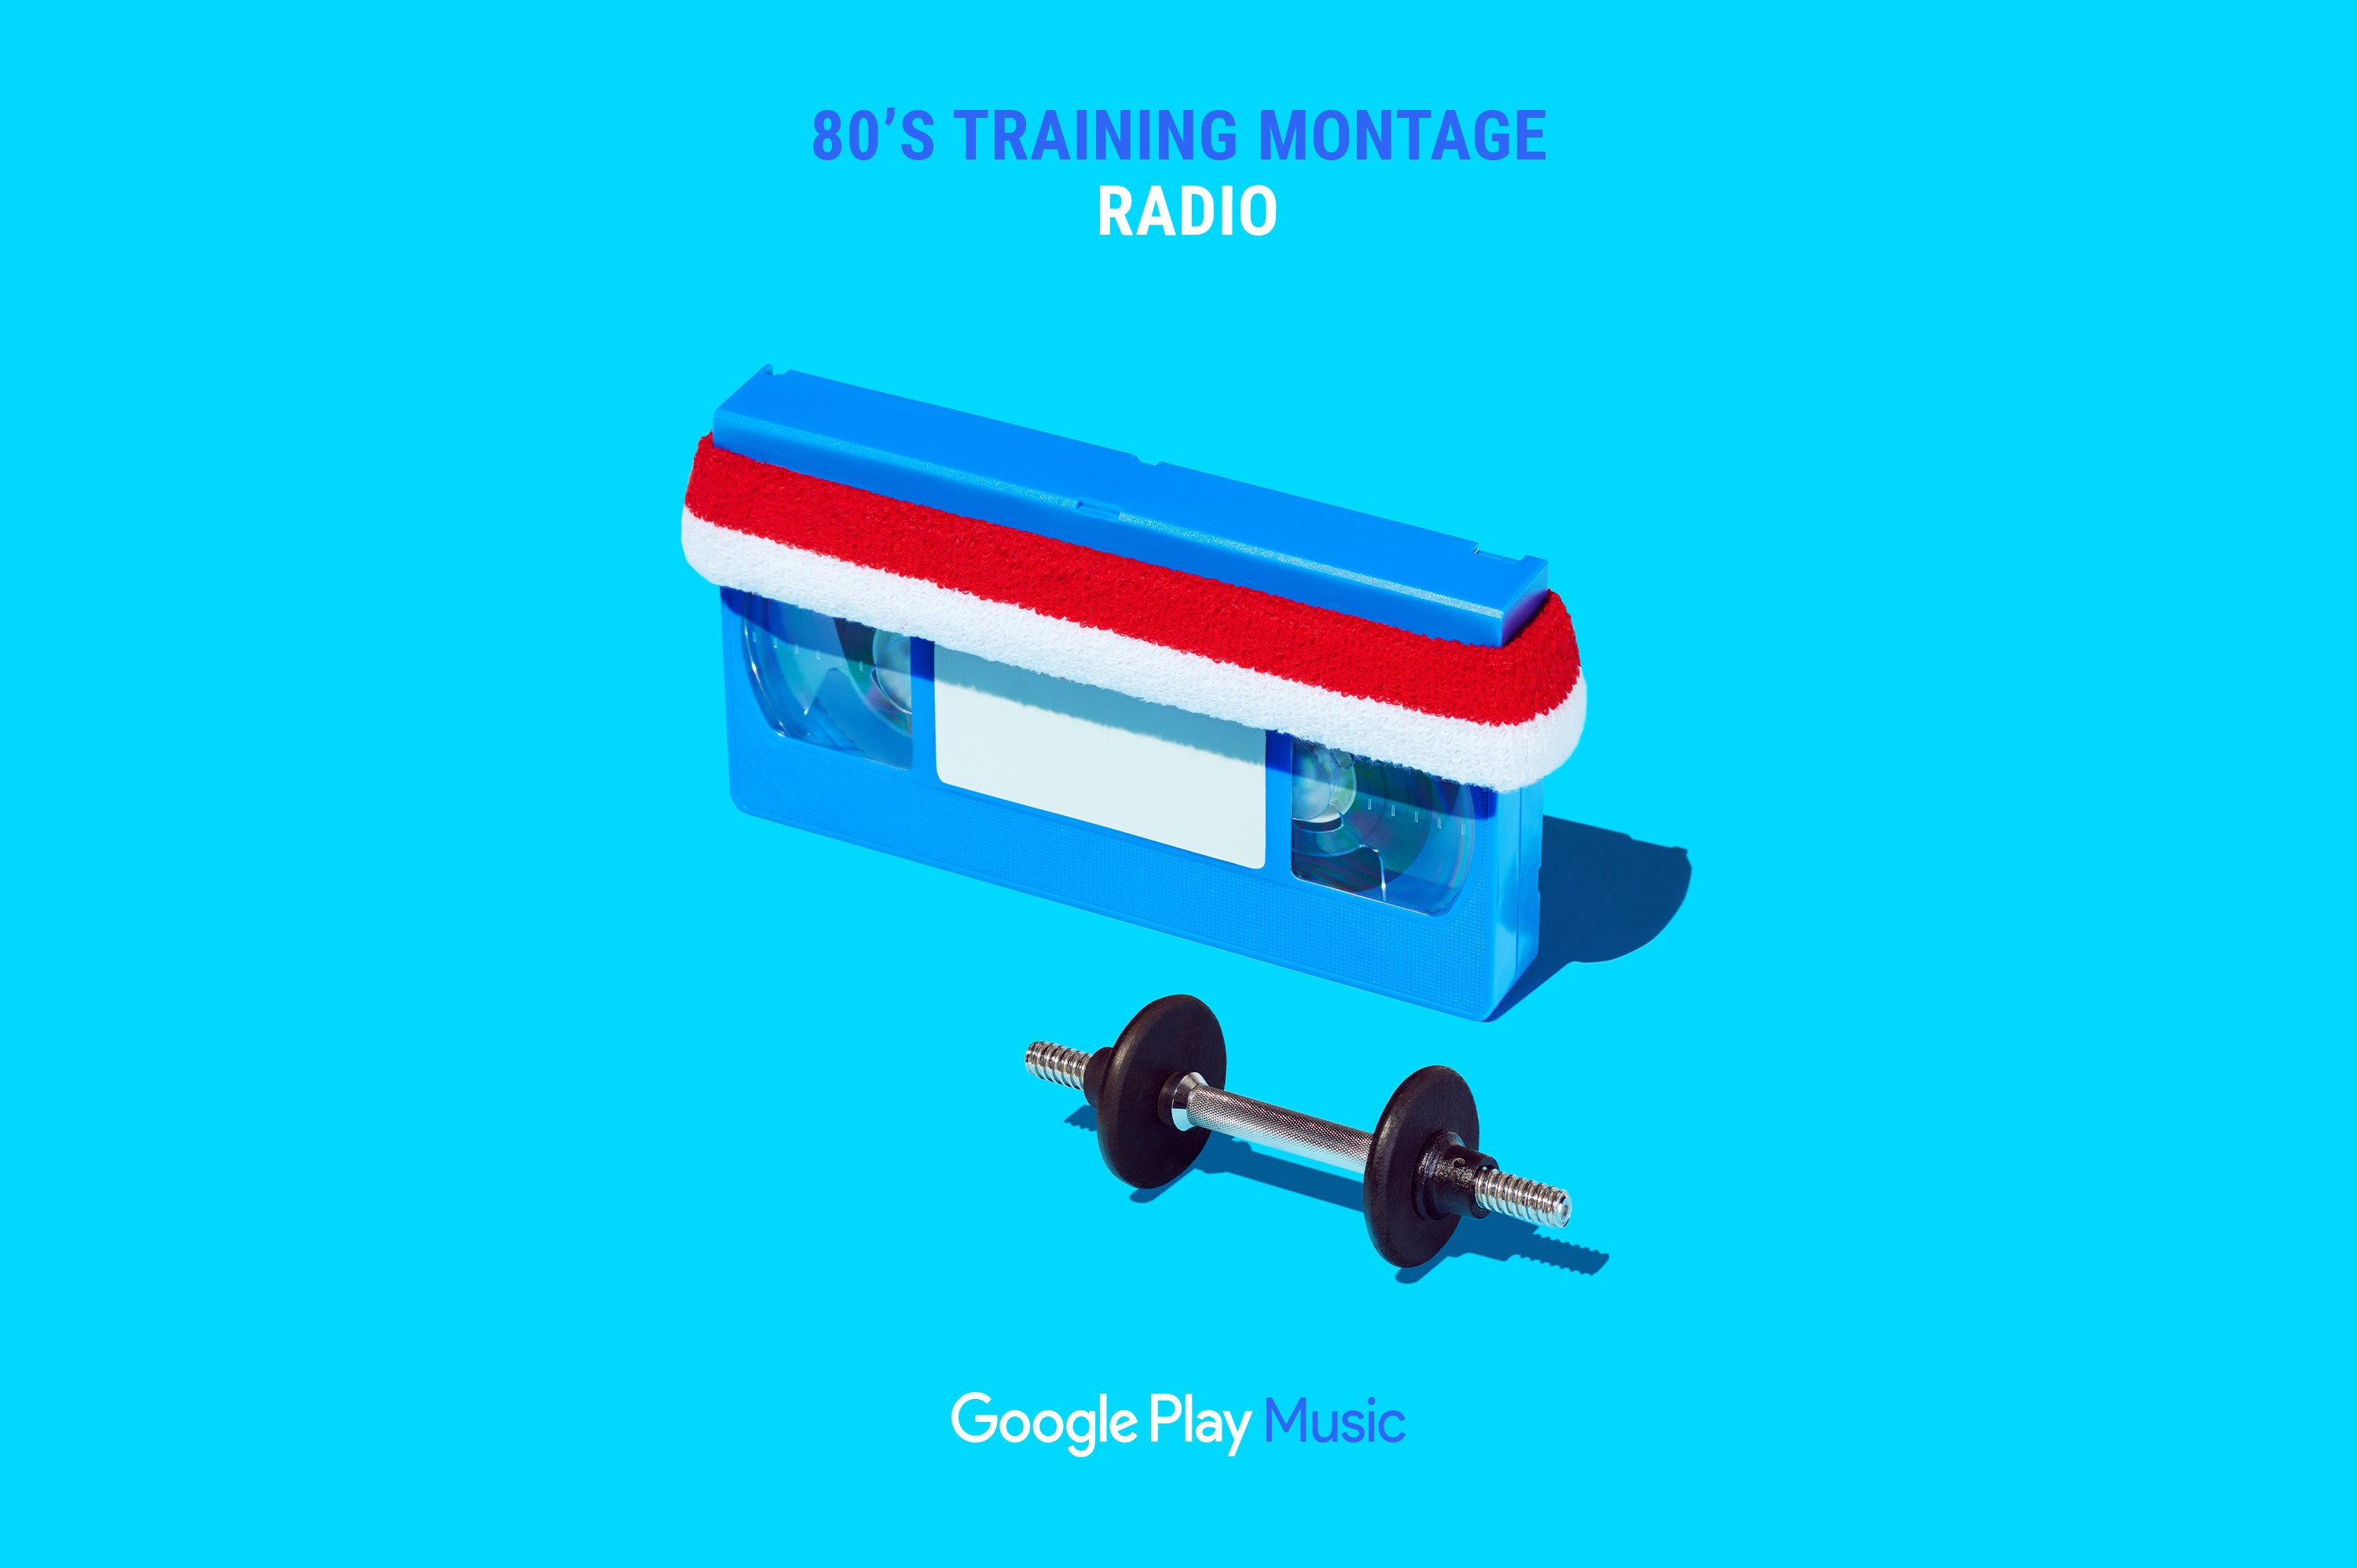 Google Play Music – 80s Training Montage Radio ad featuring blue tap cassette wearing a sweatband. Campaign concept and Art Direction by RoAndCo